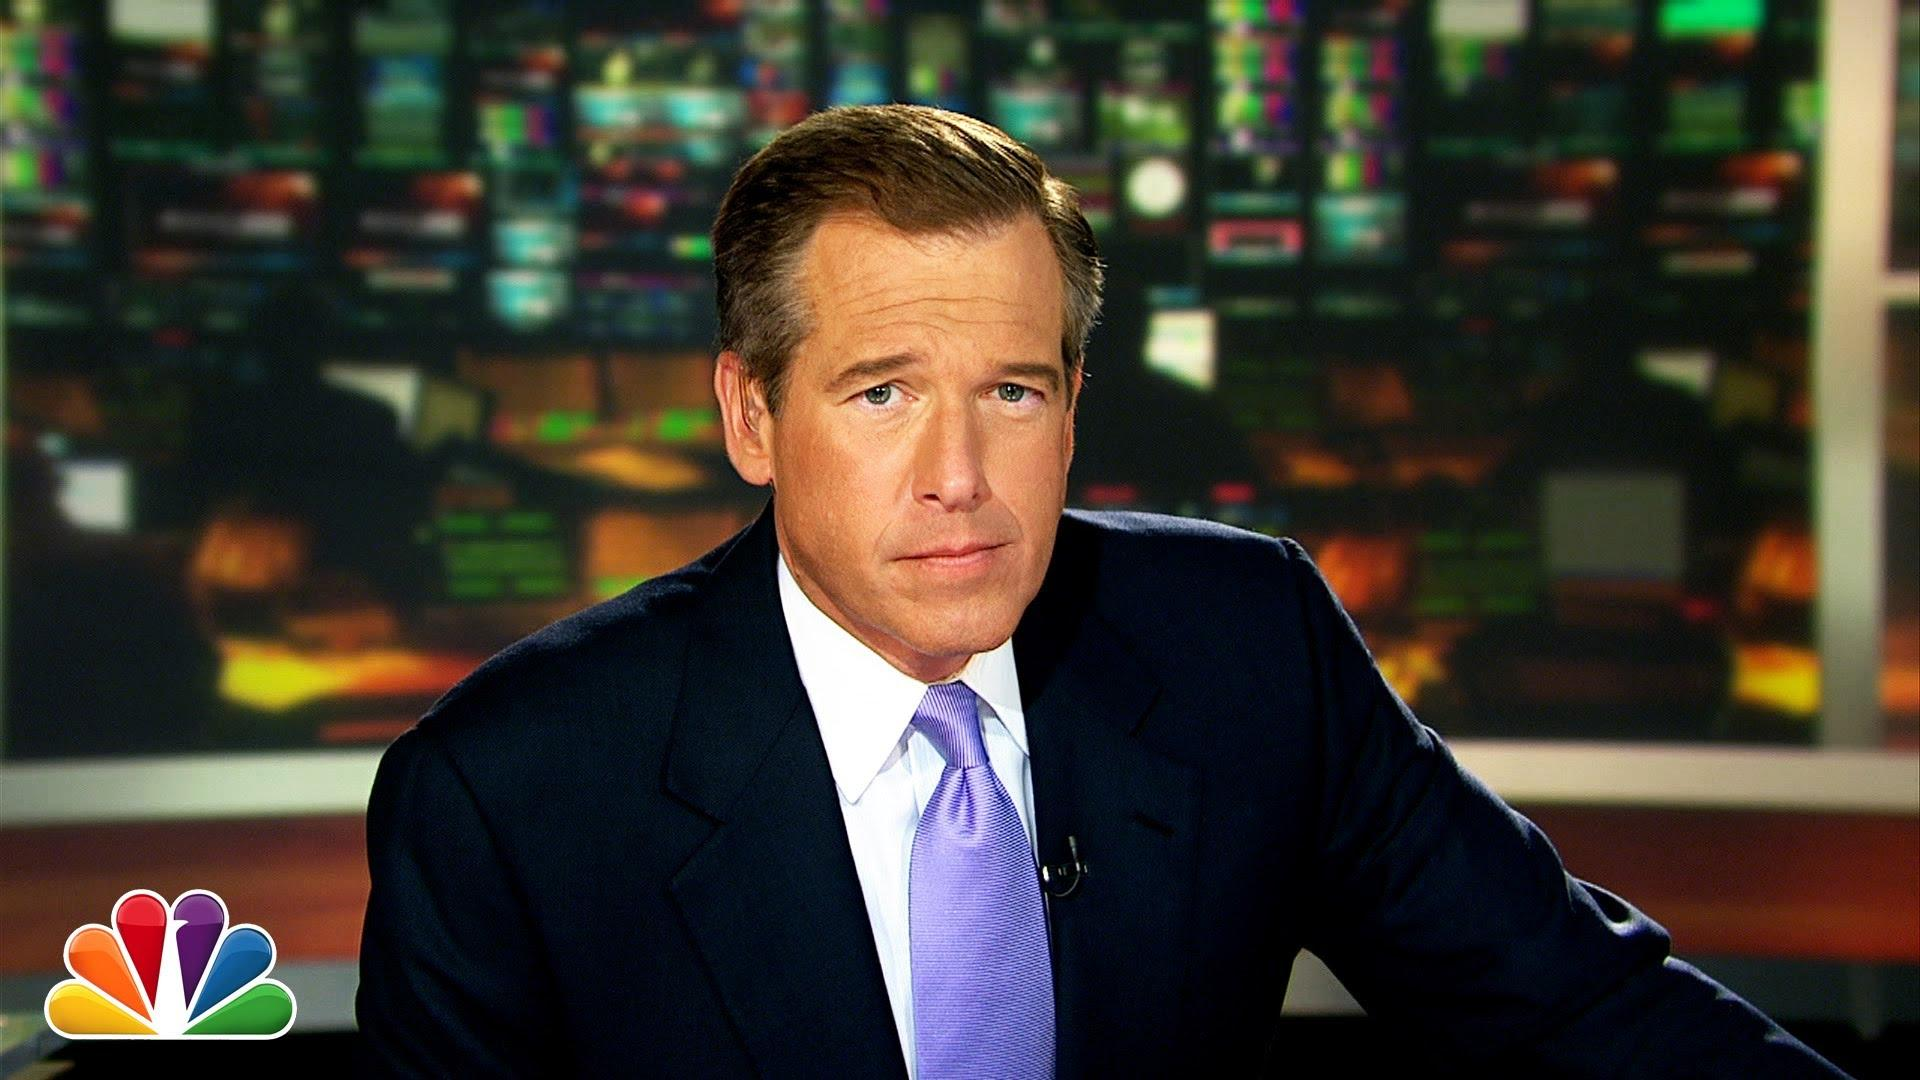 Brian Williams on the set of NBC's Nightly News before he was removed on Feb. 10th.